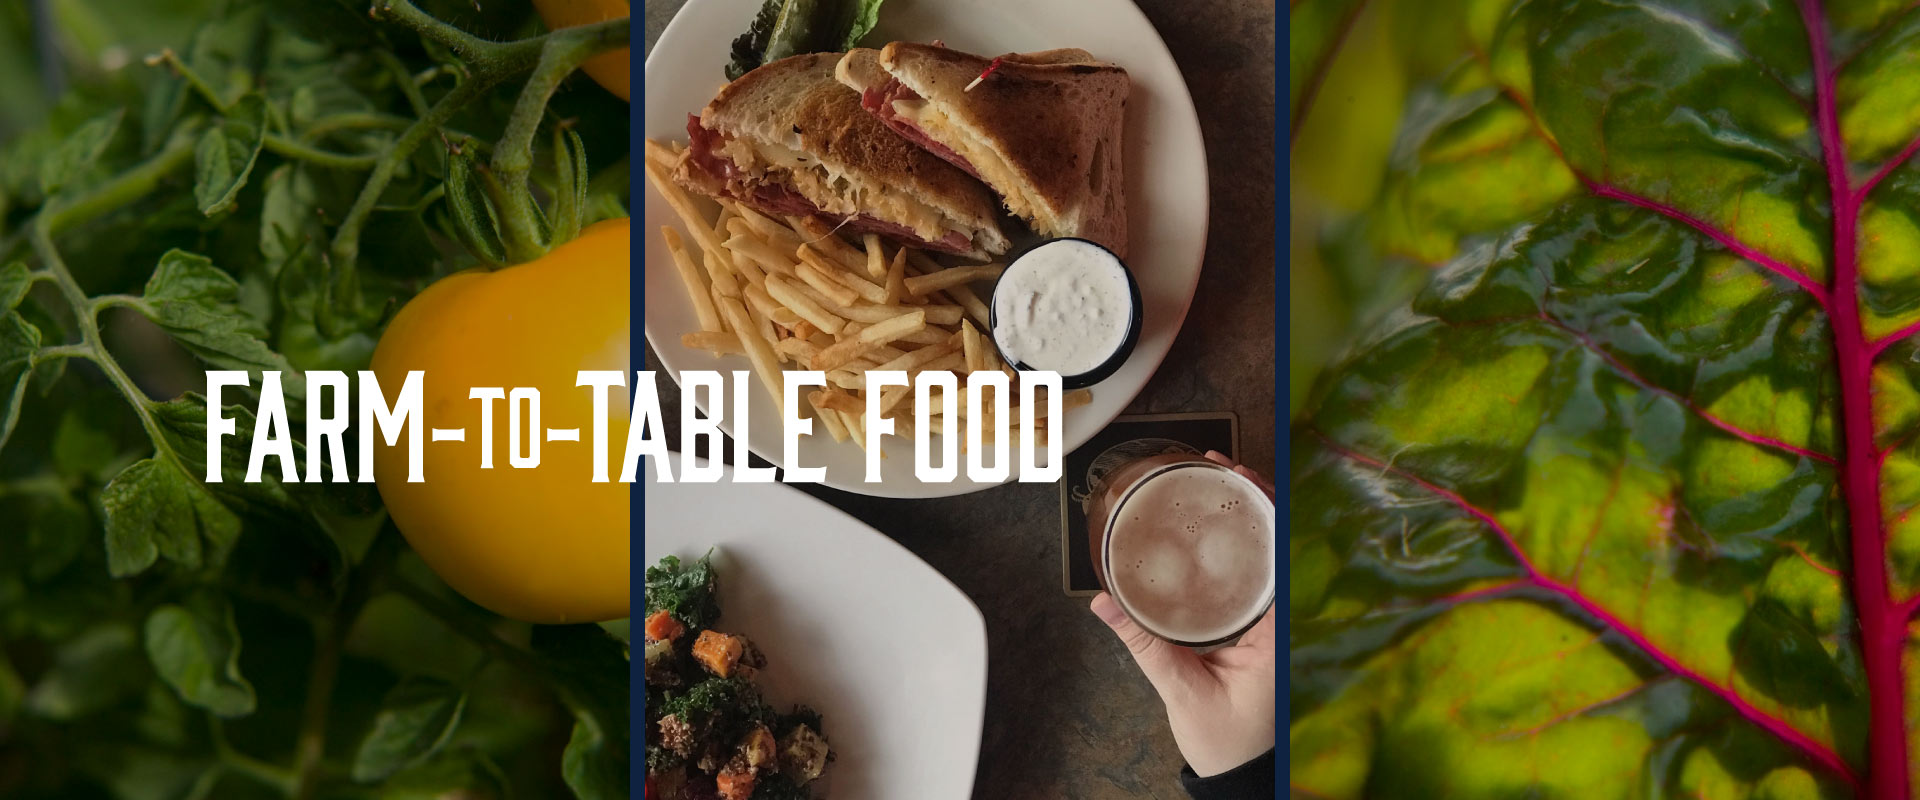 Farm-to-Table Food at Golden Valley Brewery & Restaurant